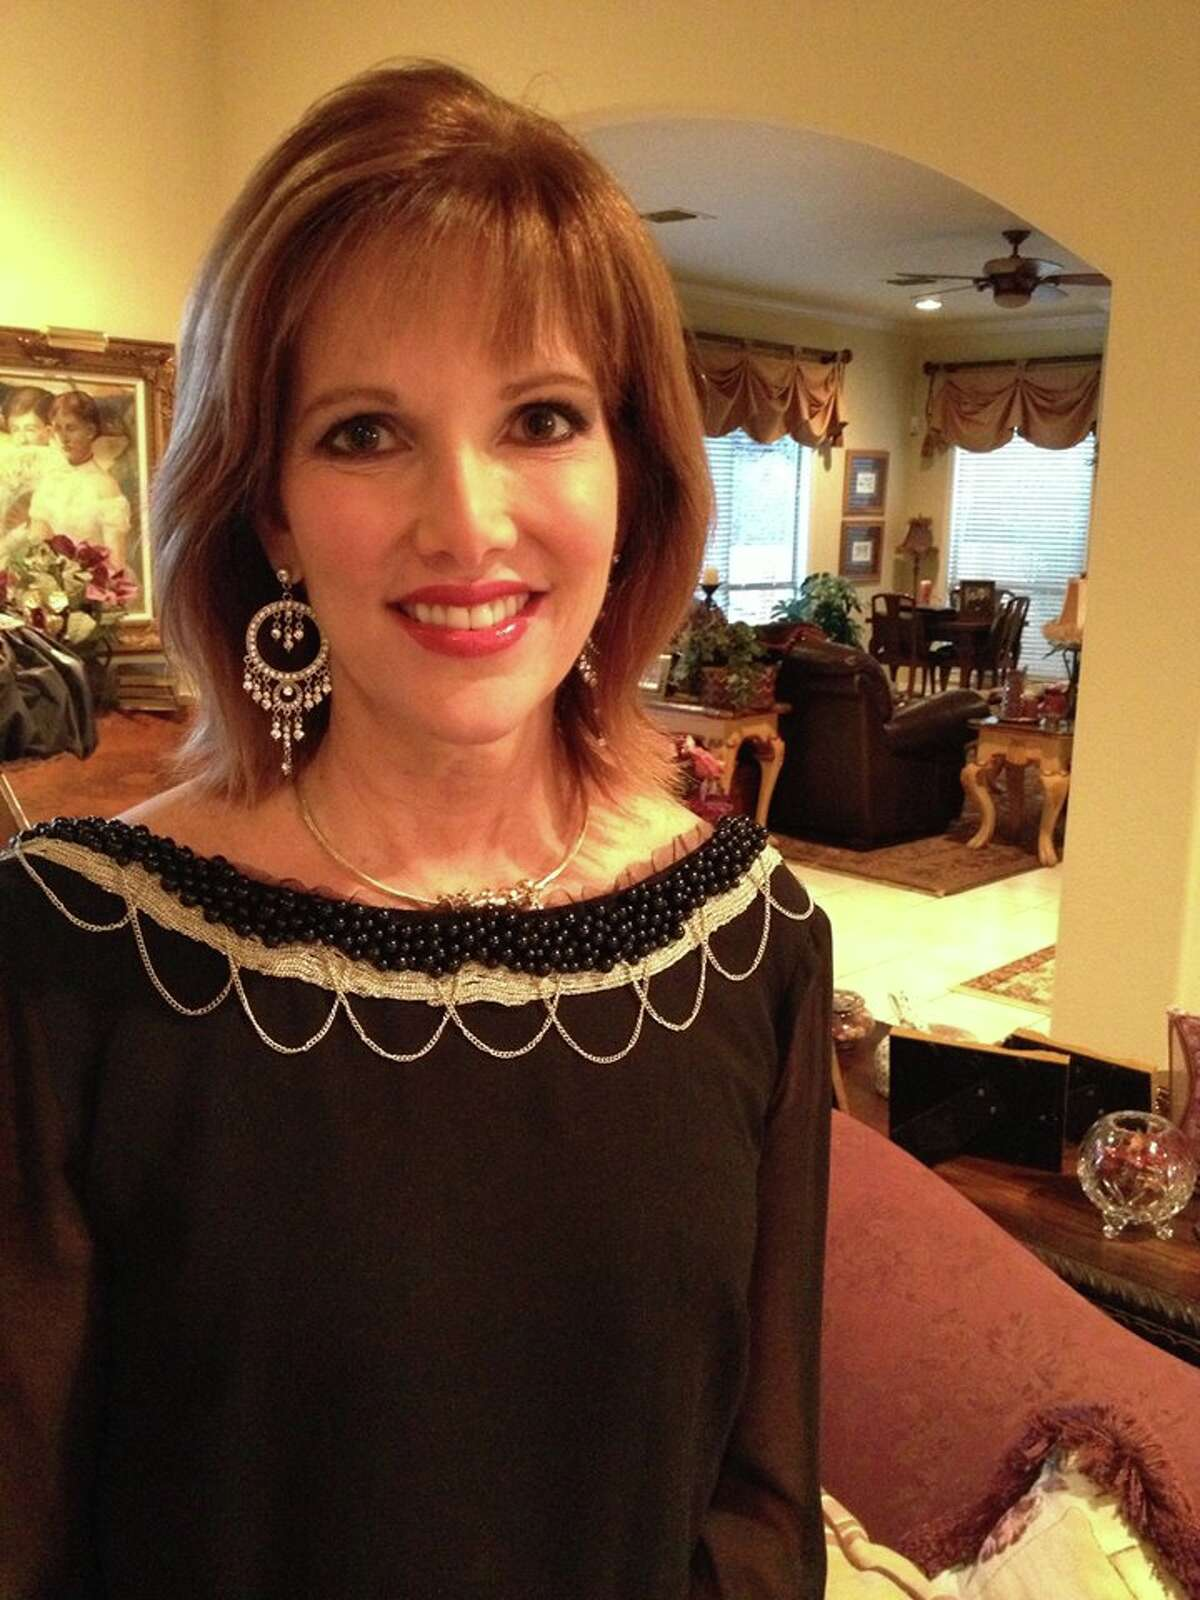 Karen Gallagher started her San Antonio news career at KENS in the 1980s, but shone the brightest after jumping to KSAT and nabbing the main anchor job there. In 1995, she and co-anchor Bob Salter did what many thought was impossible: dethroned KENS' Marrou at 10 p.m. She left KSAT in '98 and wore a variety of hats on cable TV. The mom of two daughters and fervent Catholic serves on the board of Padua Place here and is